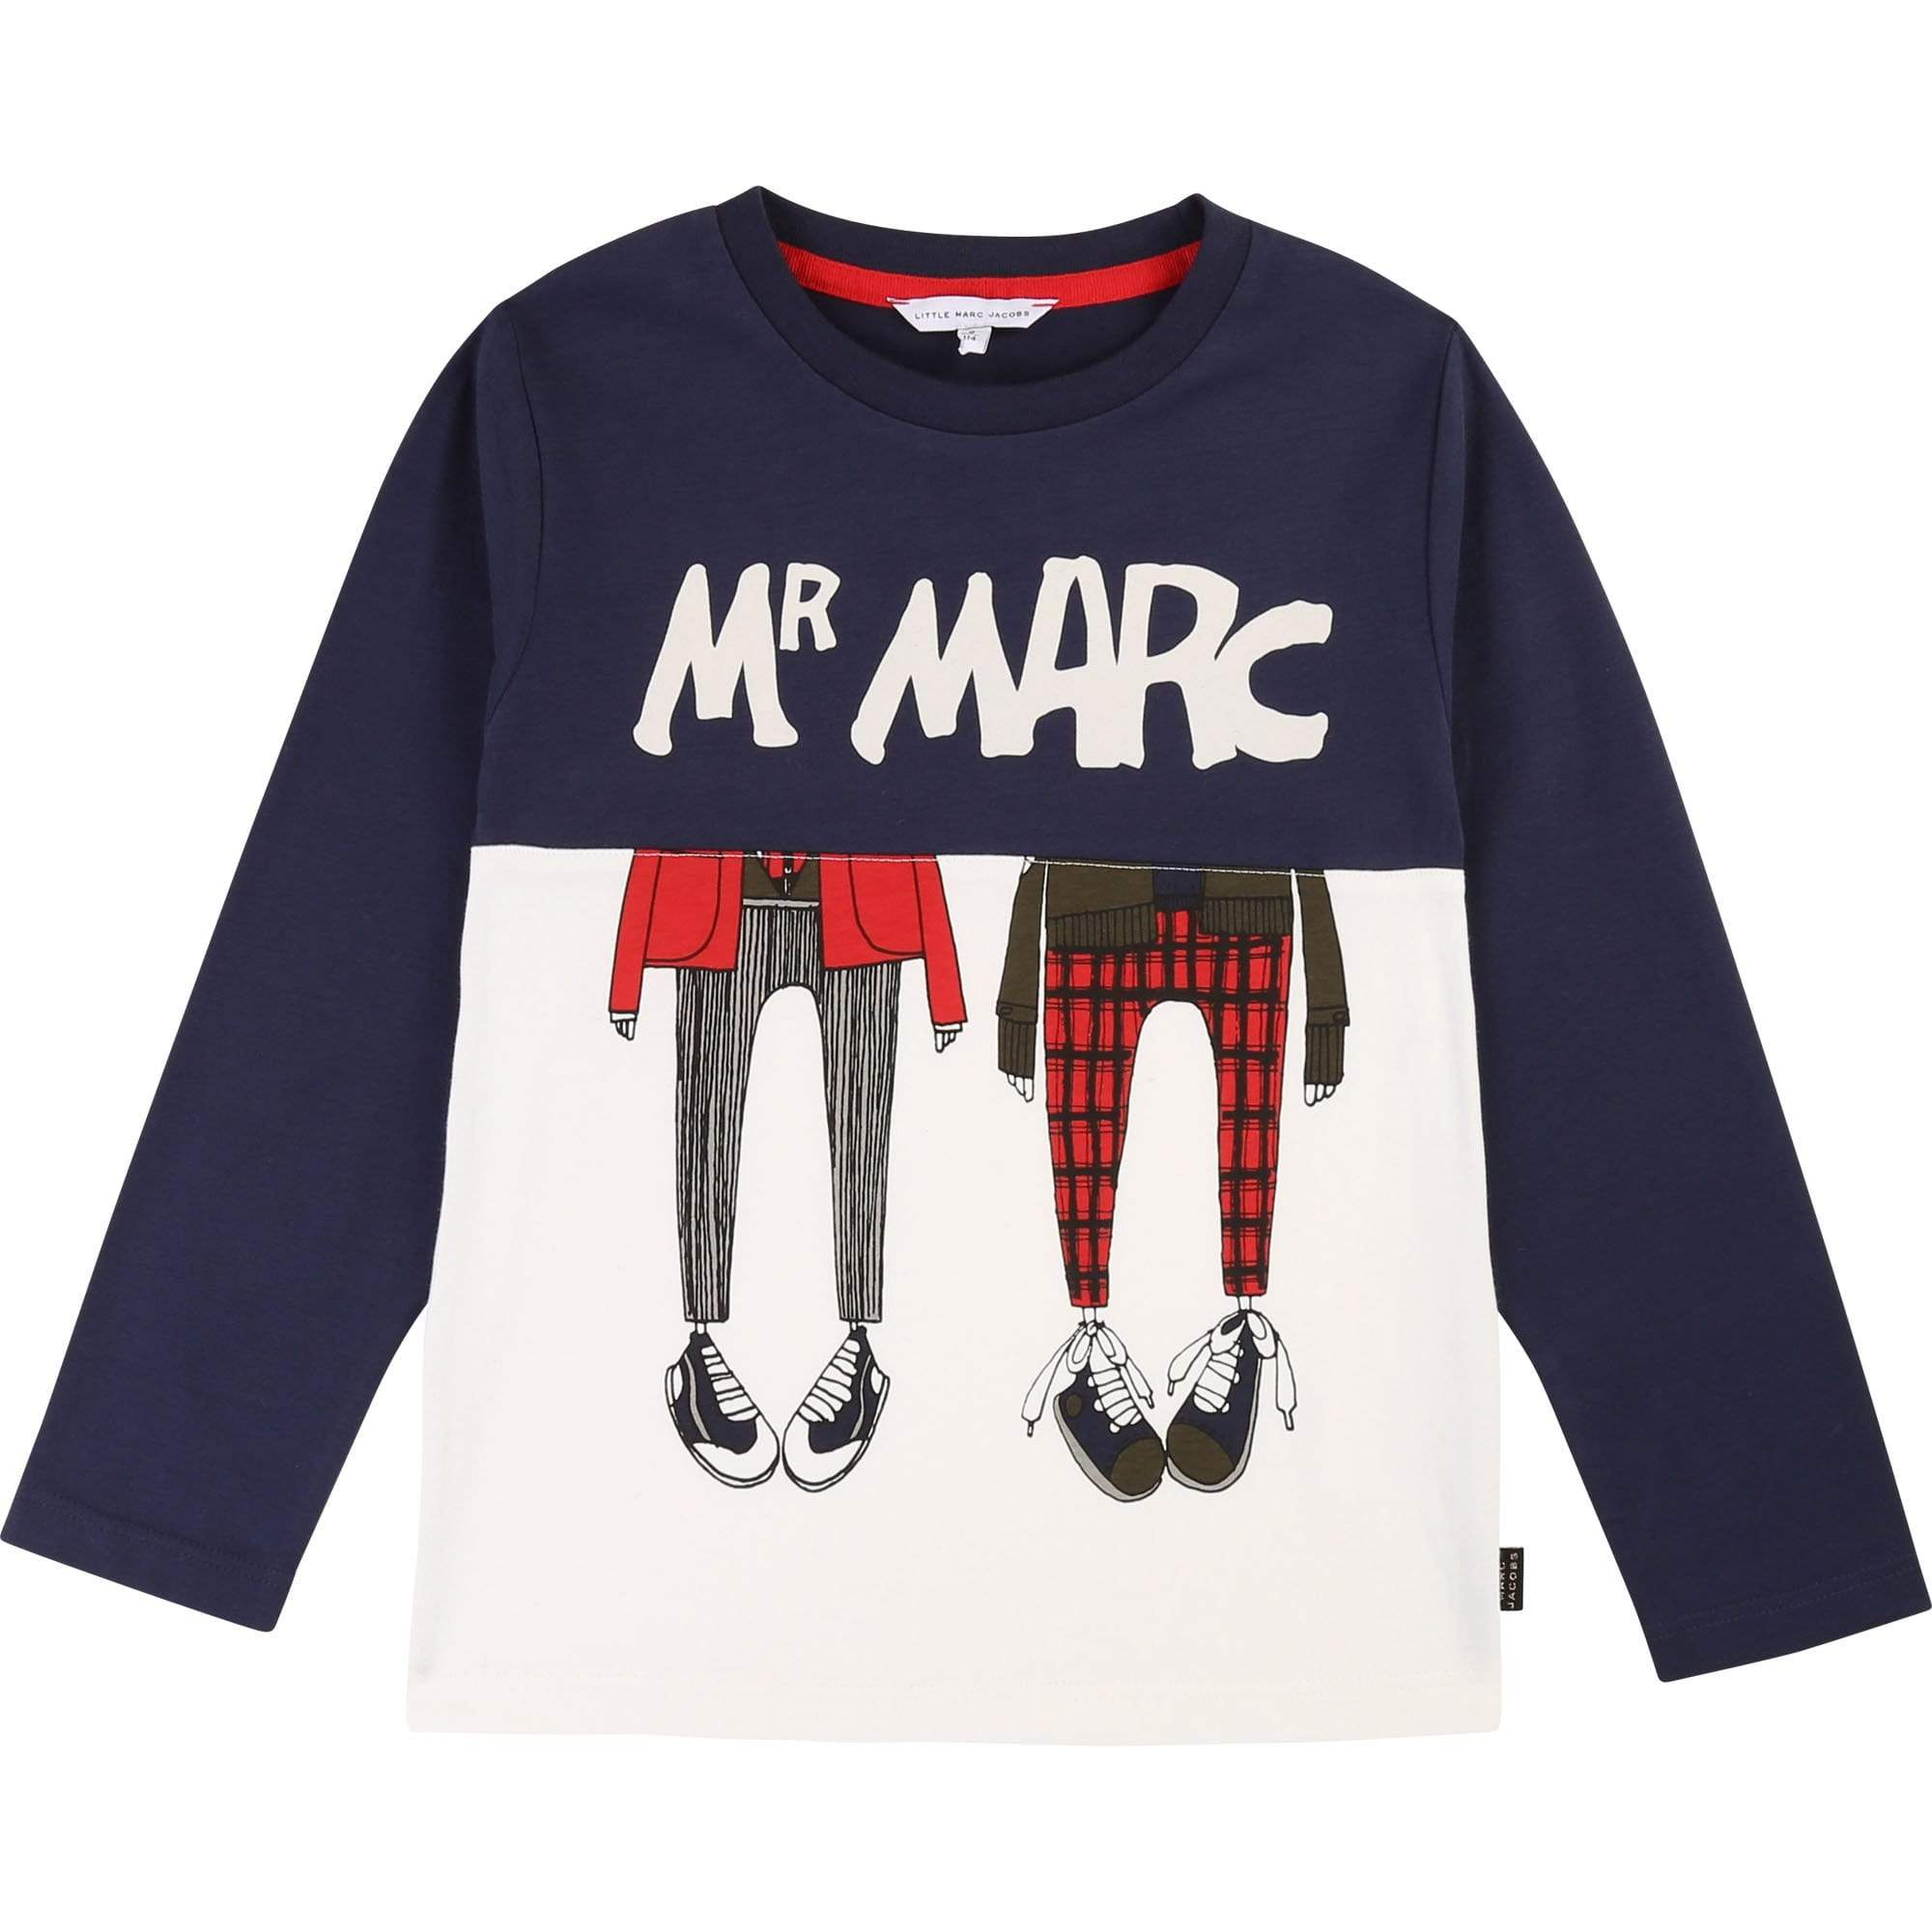 Little Marc Jacobs Chandails Tee-shirt bicolore en jersey coton avec illustration fantaisie et raiser tissé MARC JACOBS noir.